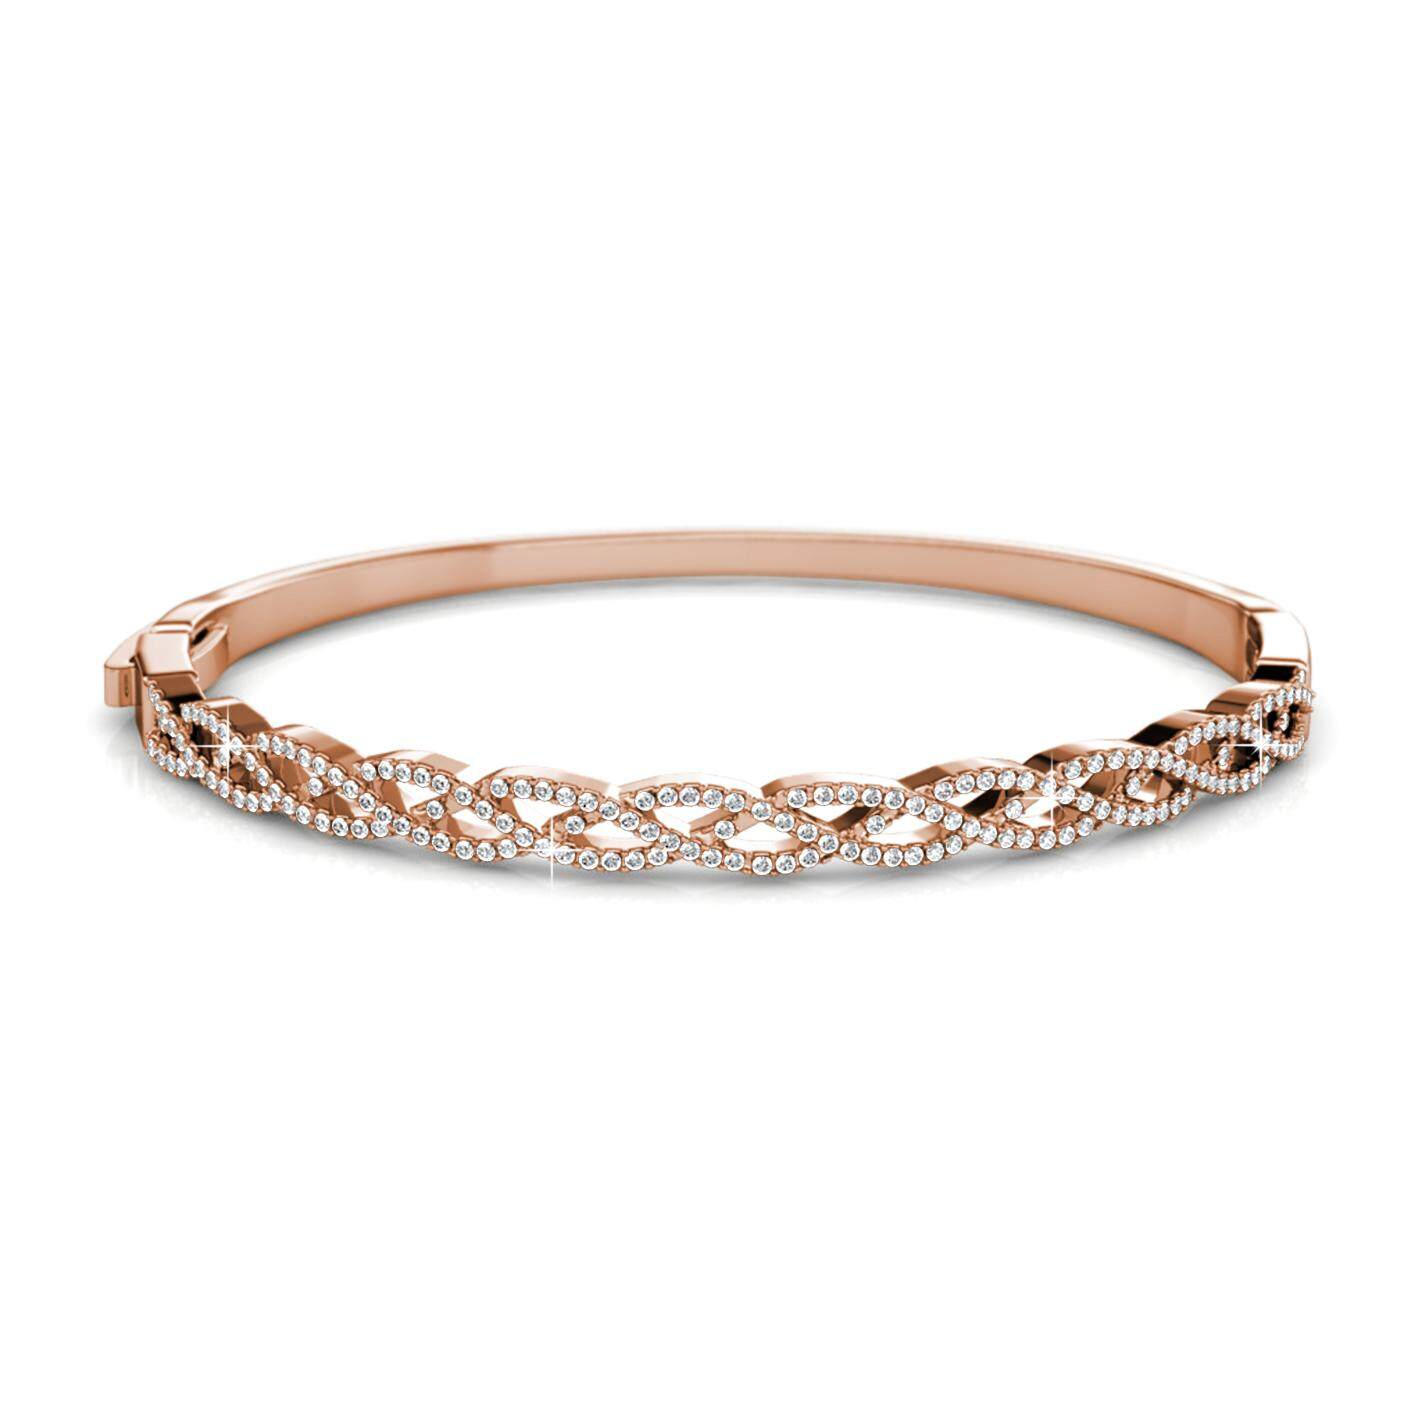 Her Jewellery Braided Bangle (White / Rose Gold) embellished with Crystals from Swarovski